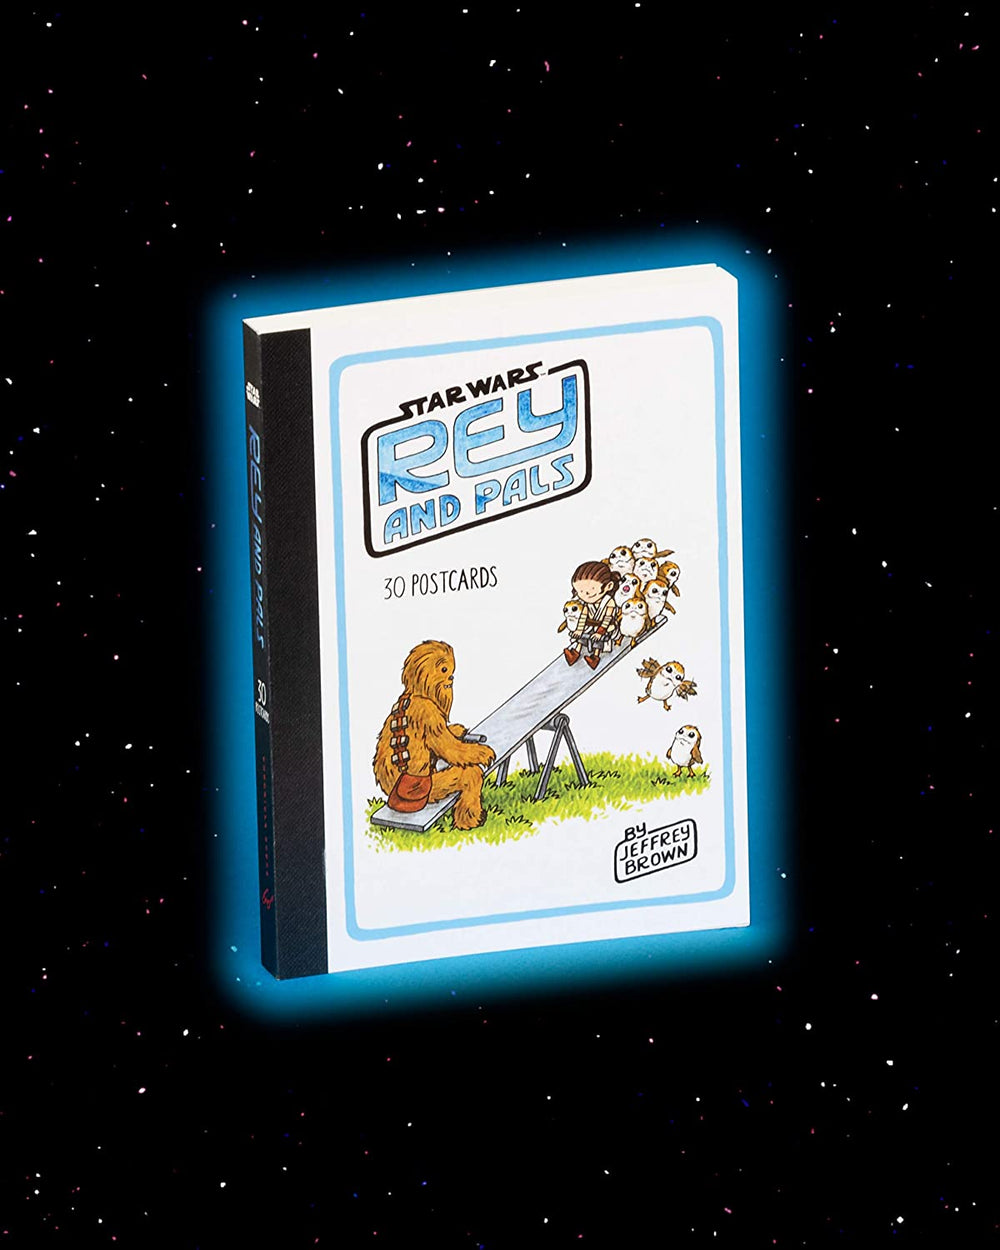 Star Wars - Rey And Pals | Chronicle Books | 30 Pieces Post Cards